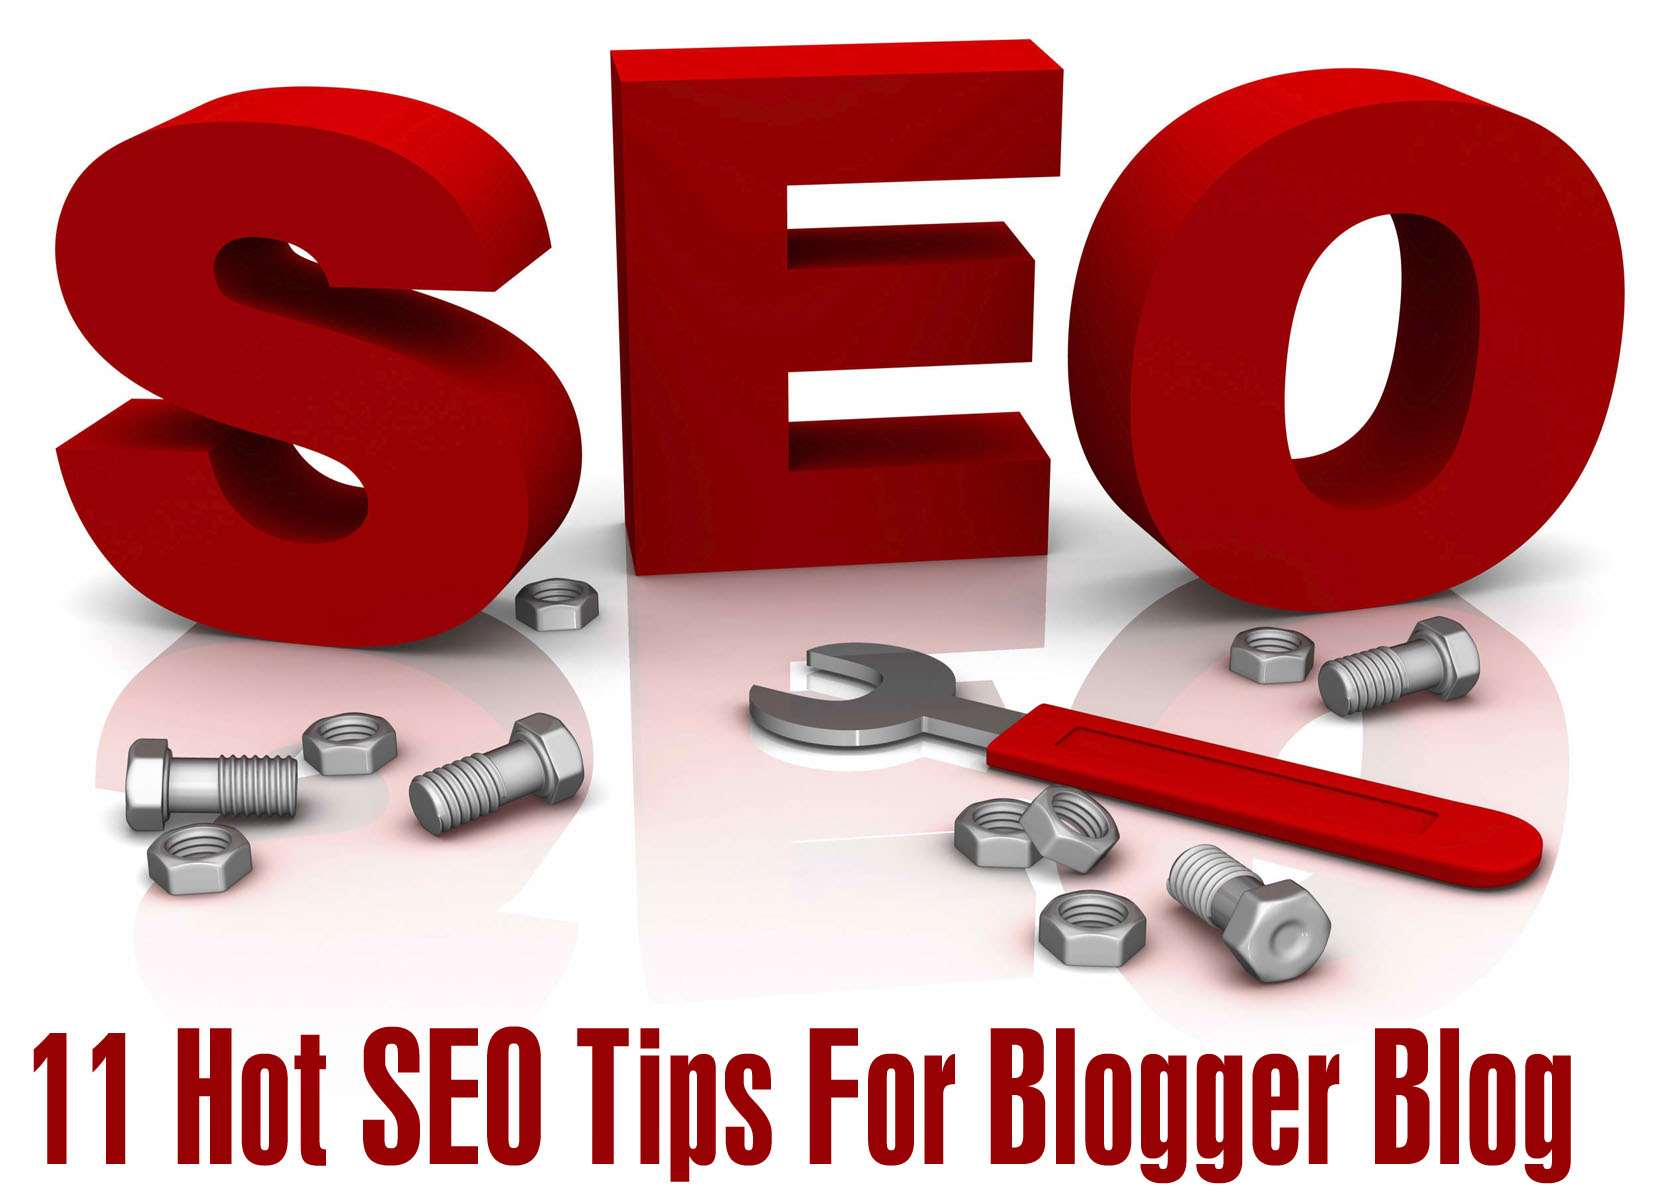 SEO tips for blogger blog